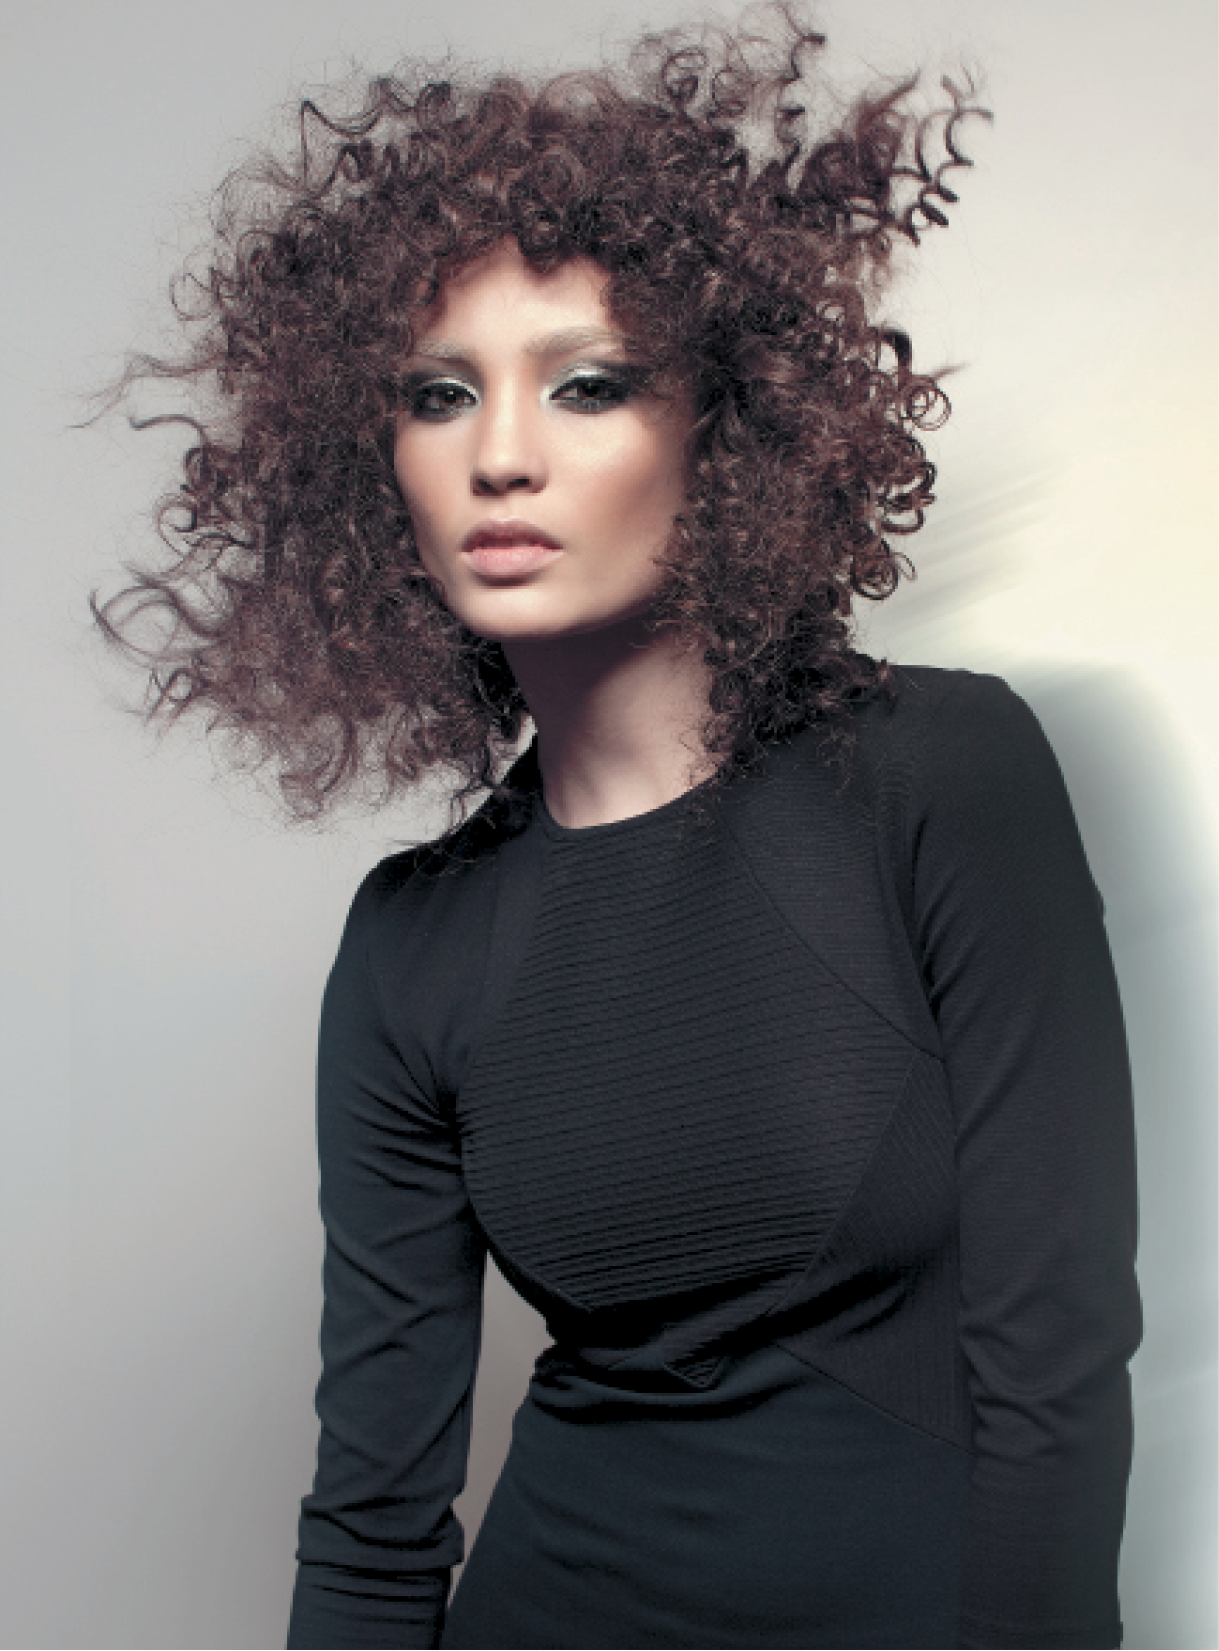 To create curls and waves with movement, Buccio separated the ringlets, avoiding brushing them out, and compacted them using Osis Freeze hairspray. Once hair set, he released and separated curls again and applied Osis Glamour Queen for added moveable volume.